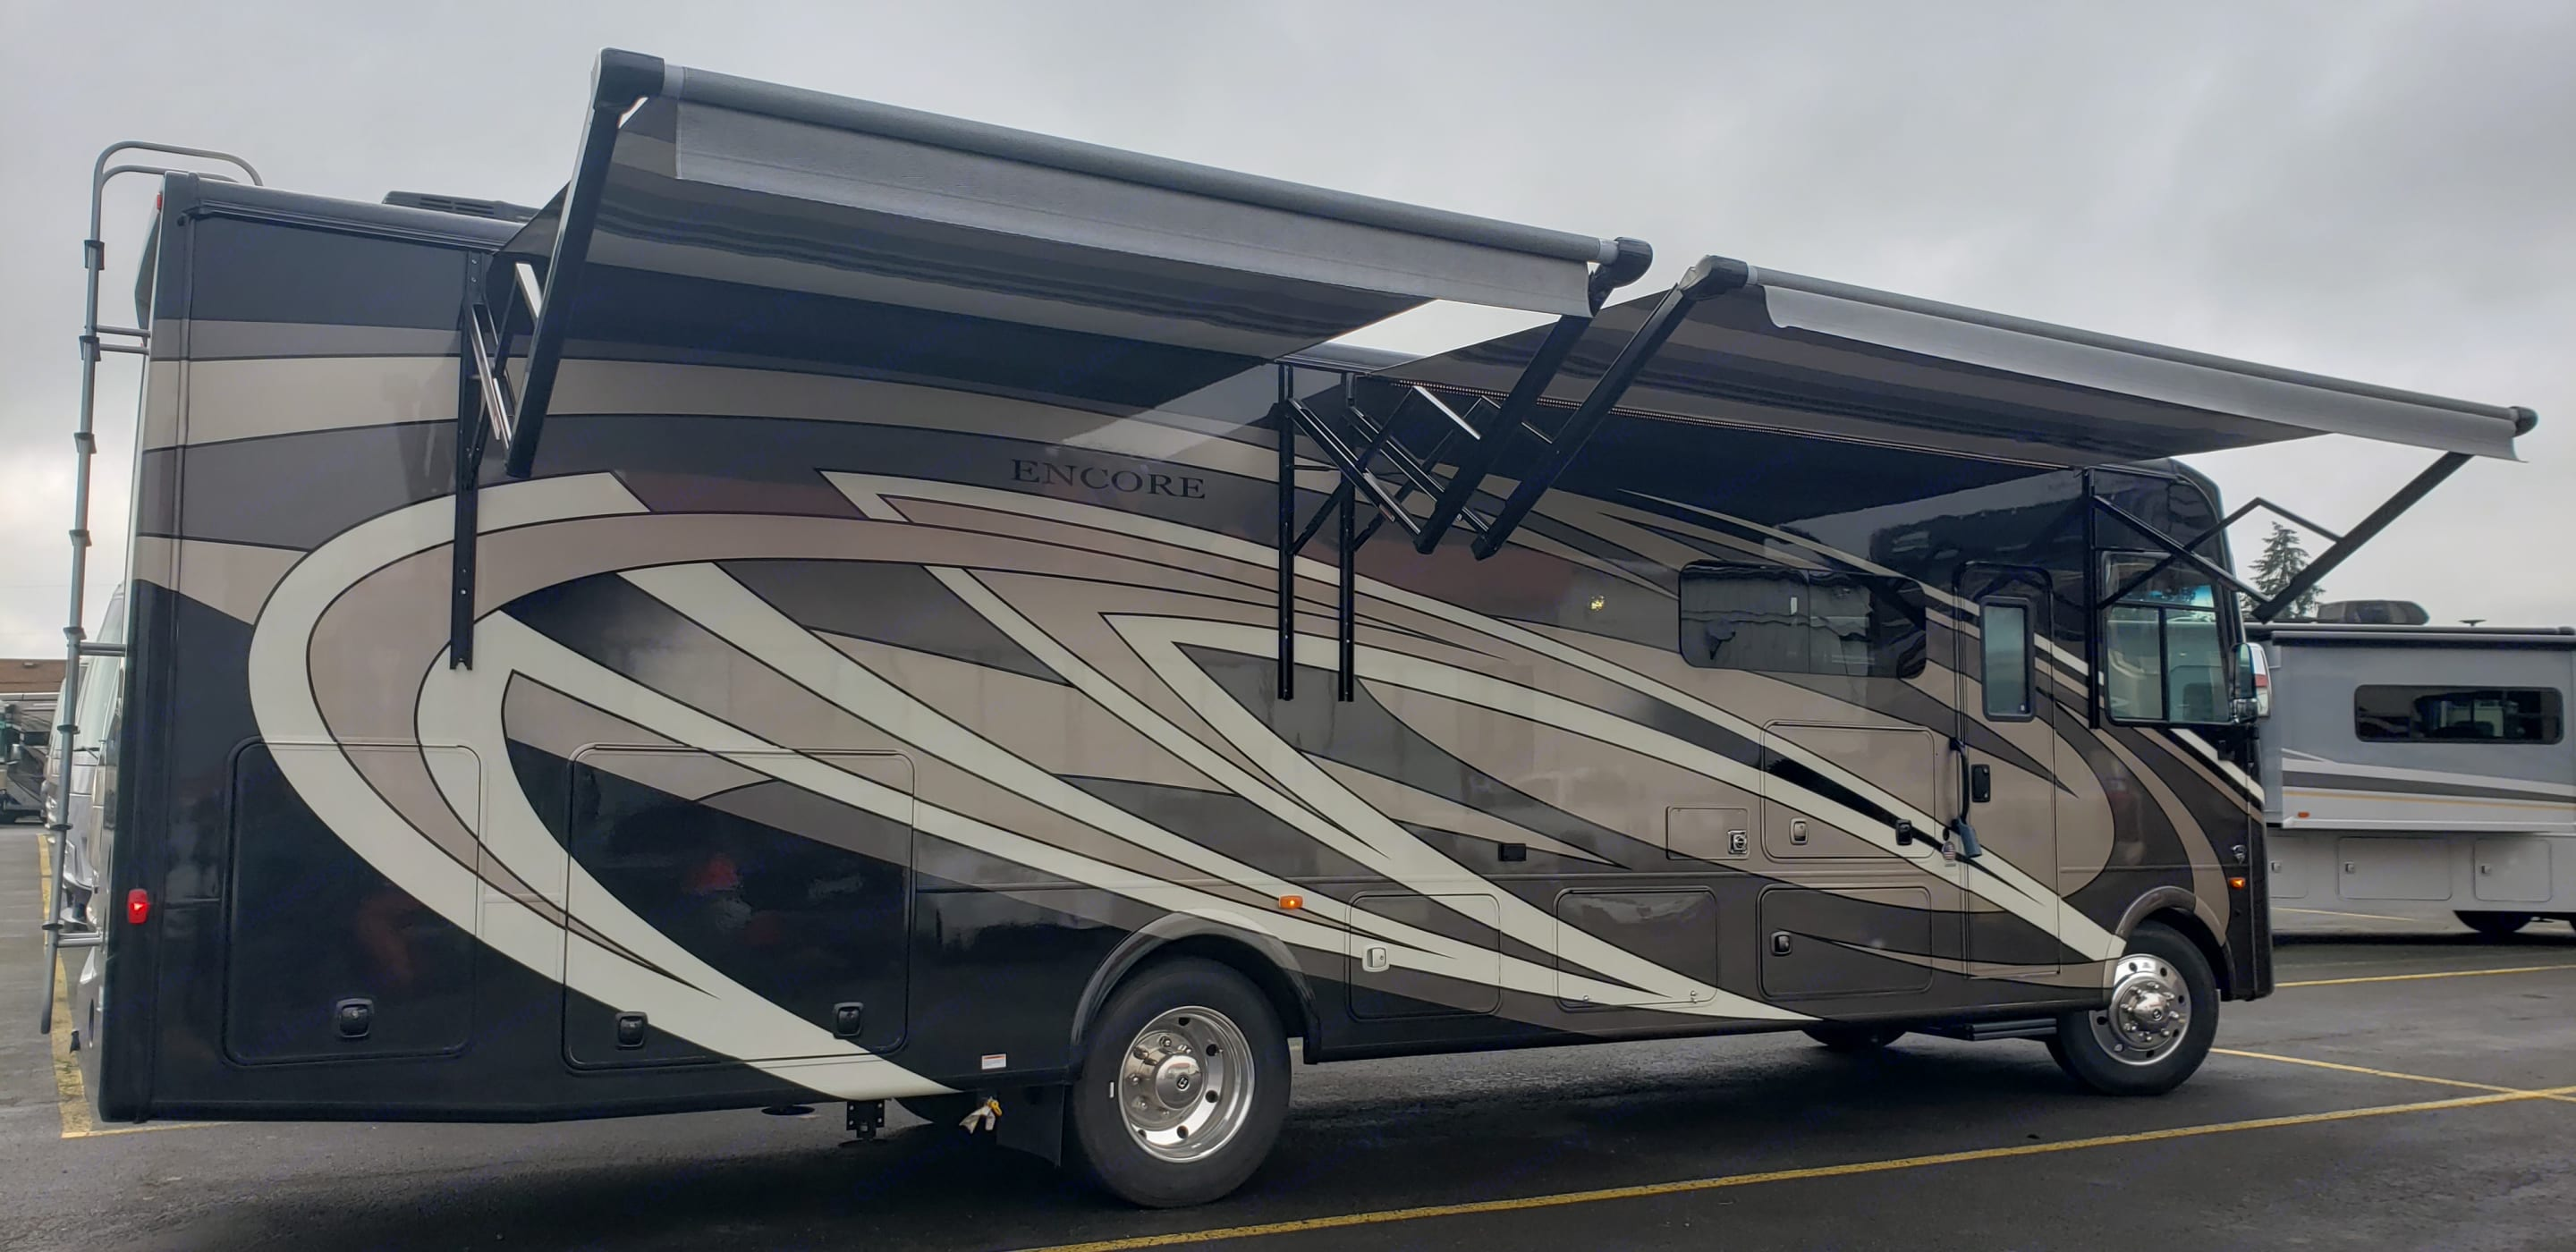 Camping Side of RV with Awnings Extended. Coachmen Encore 2021